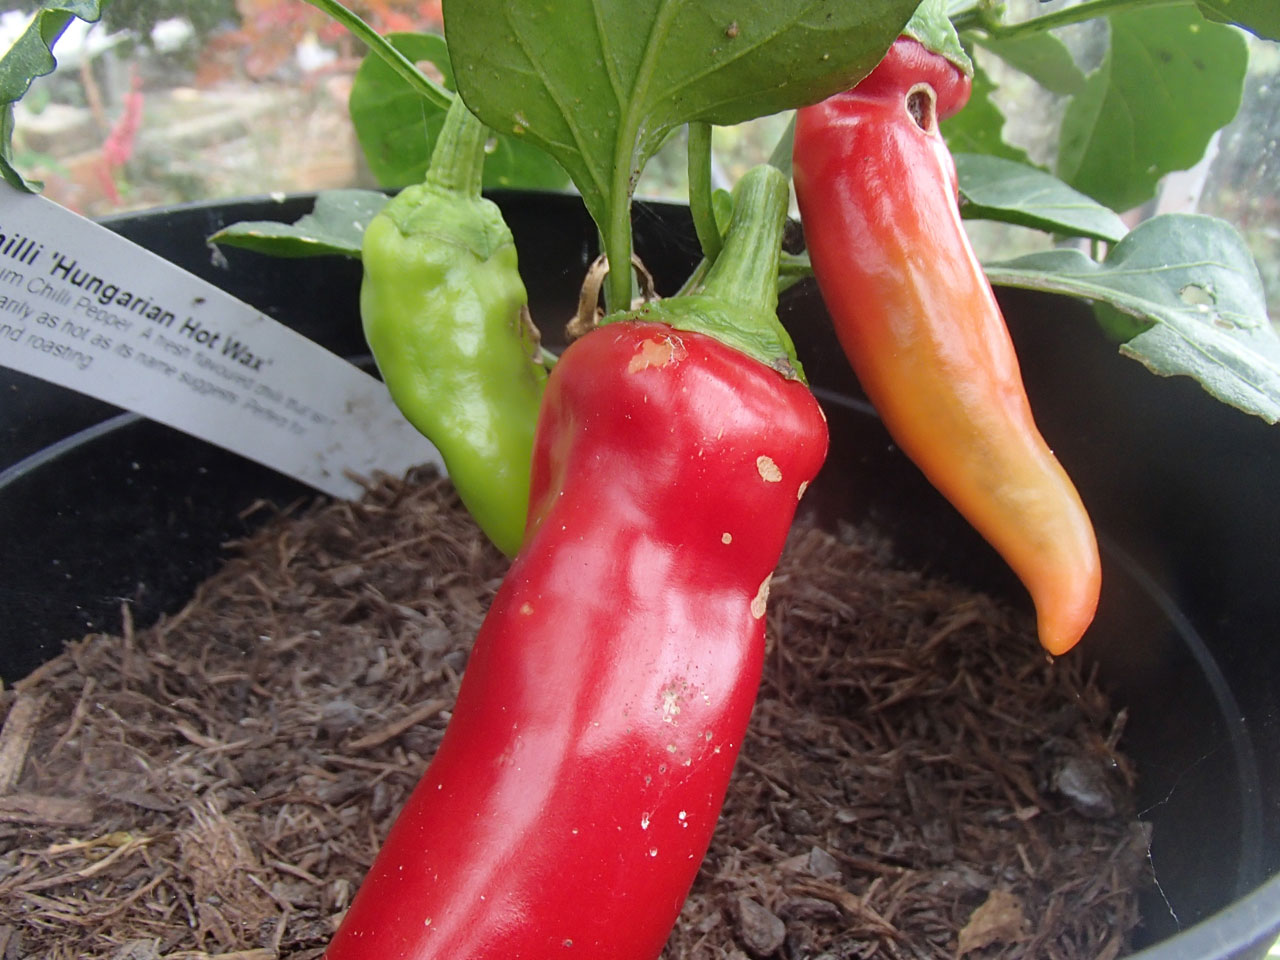 Chilliu Hungarian Hot Wax